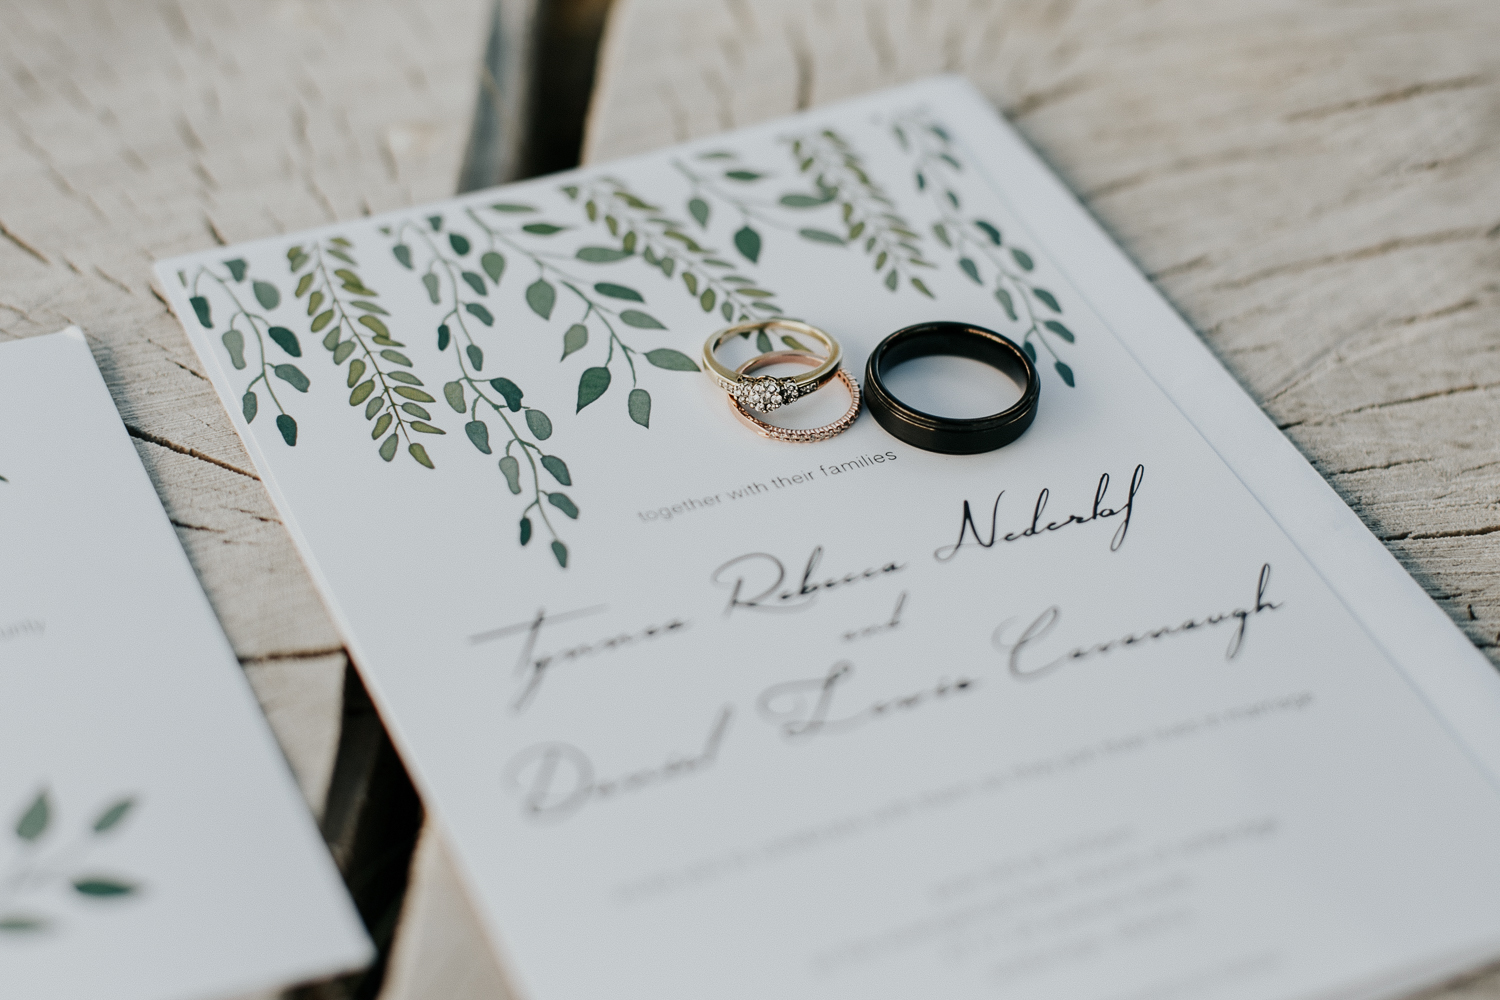 lethbridge-wedding-photographer-love-and-be-loved-photography-dan-tynnea-picture-image-photo-183.jpg